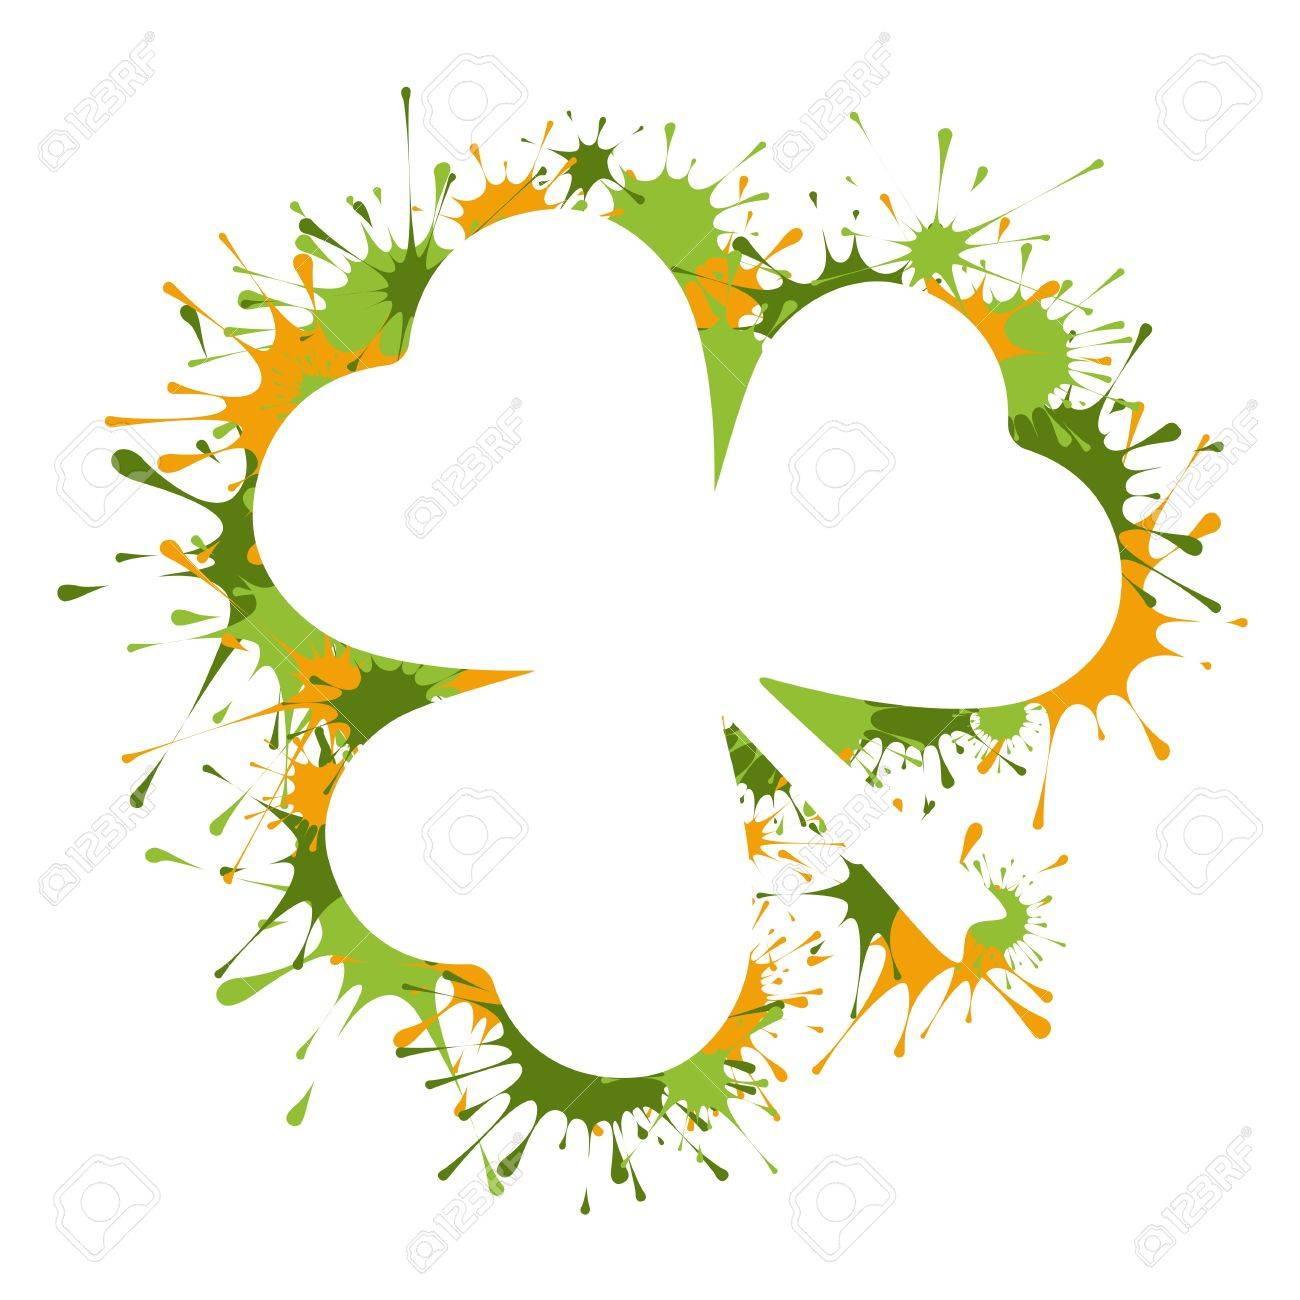 St  Patrick Day frame Stock Vector - 16956224